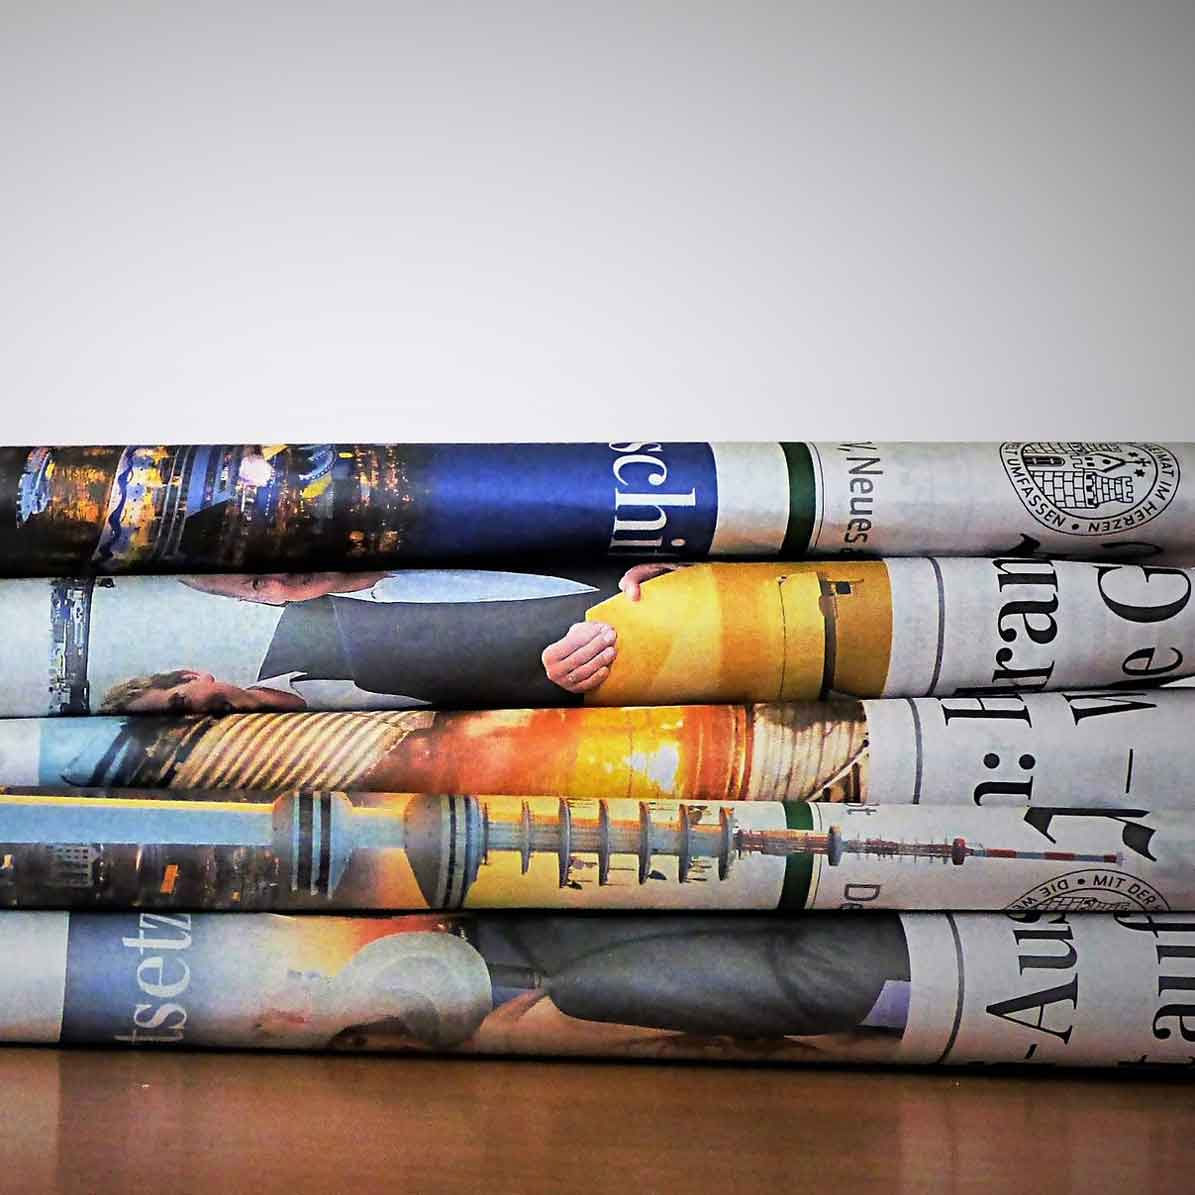 This is an image of a stack of newspapers sitting on a table